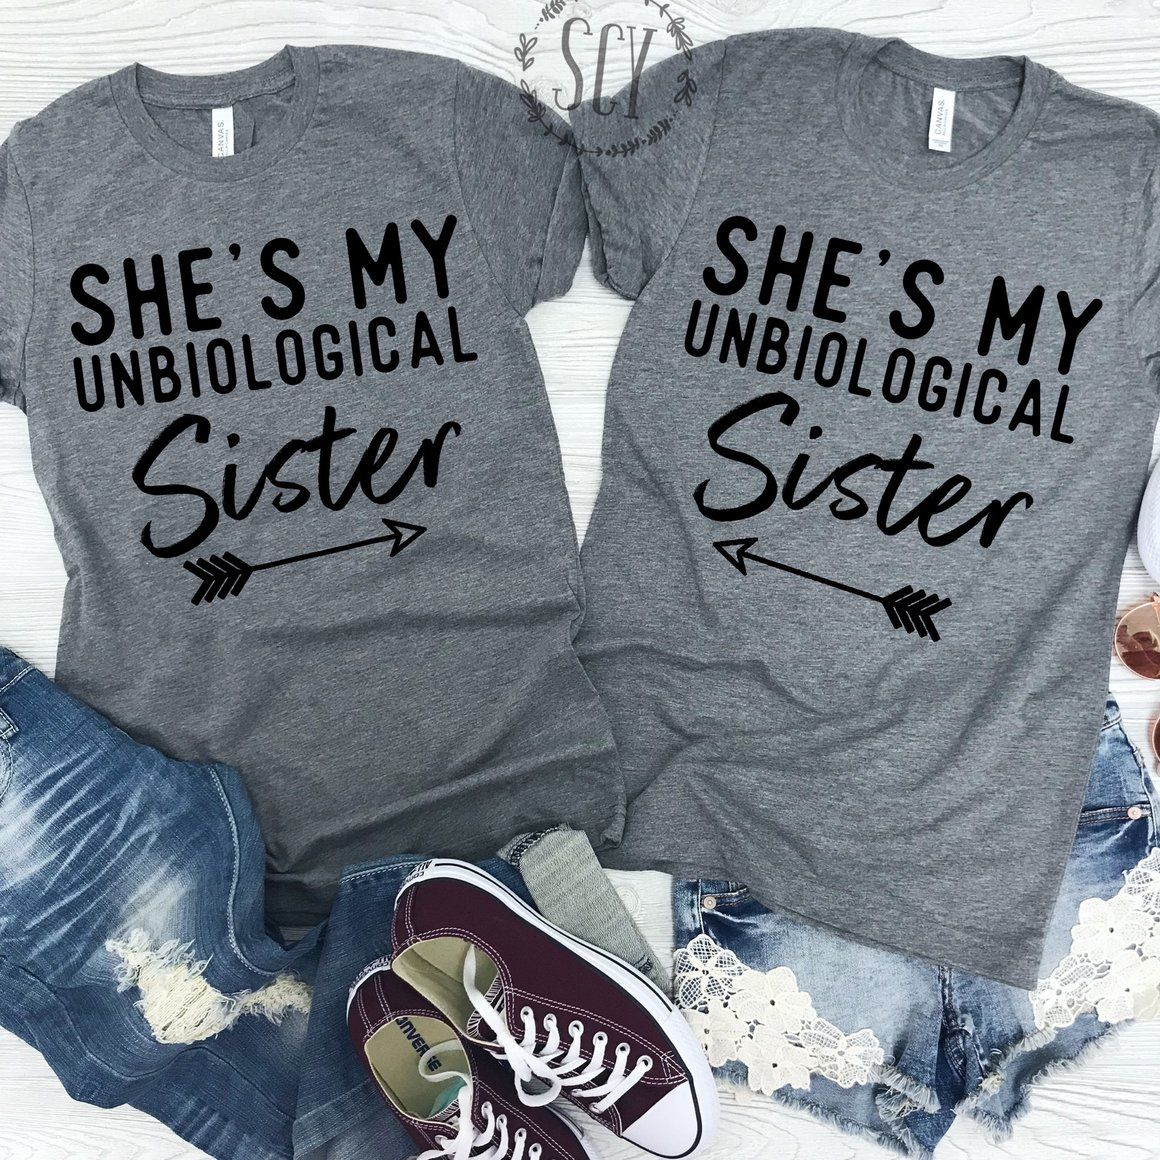 Best Friend Quotes For Shirts: She's My Unbiological Sister. Galentine's Day. Galentine